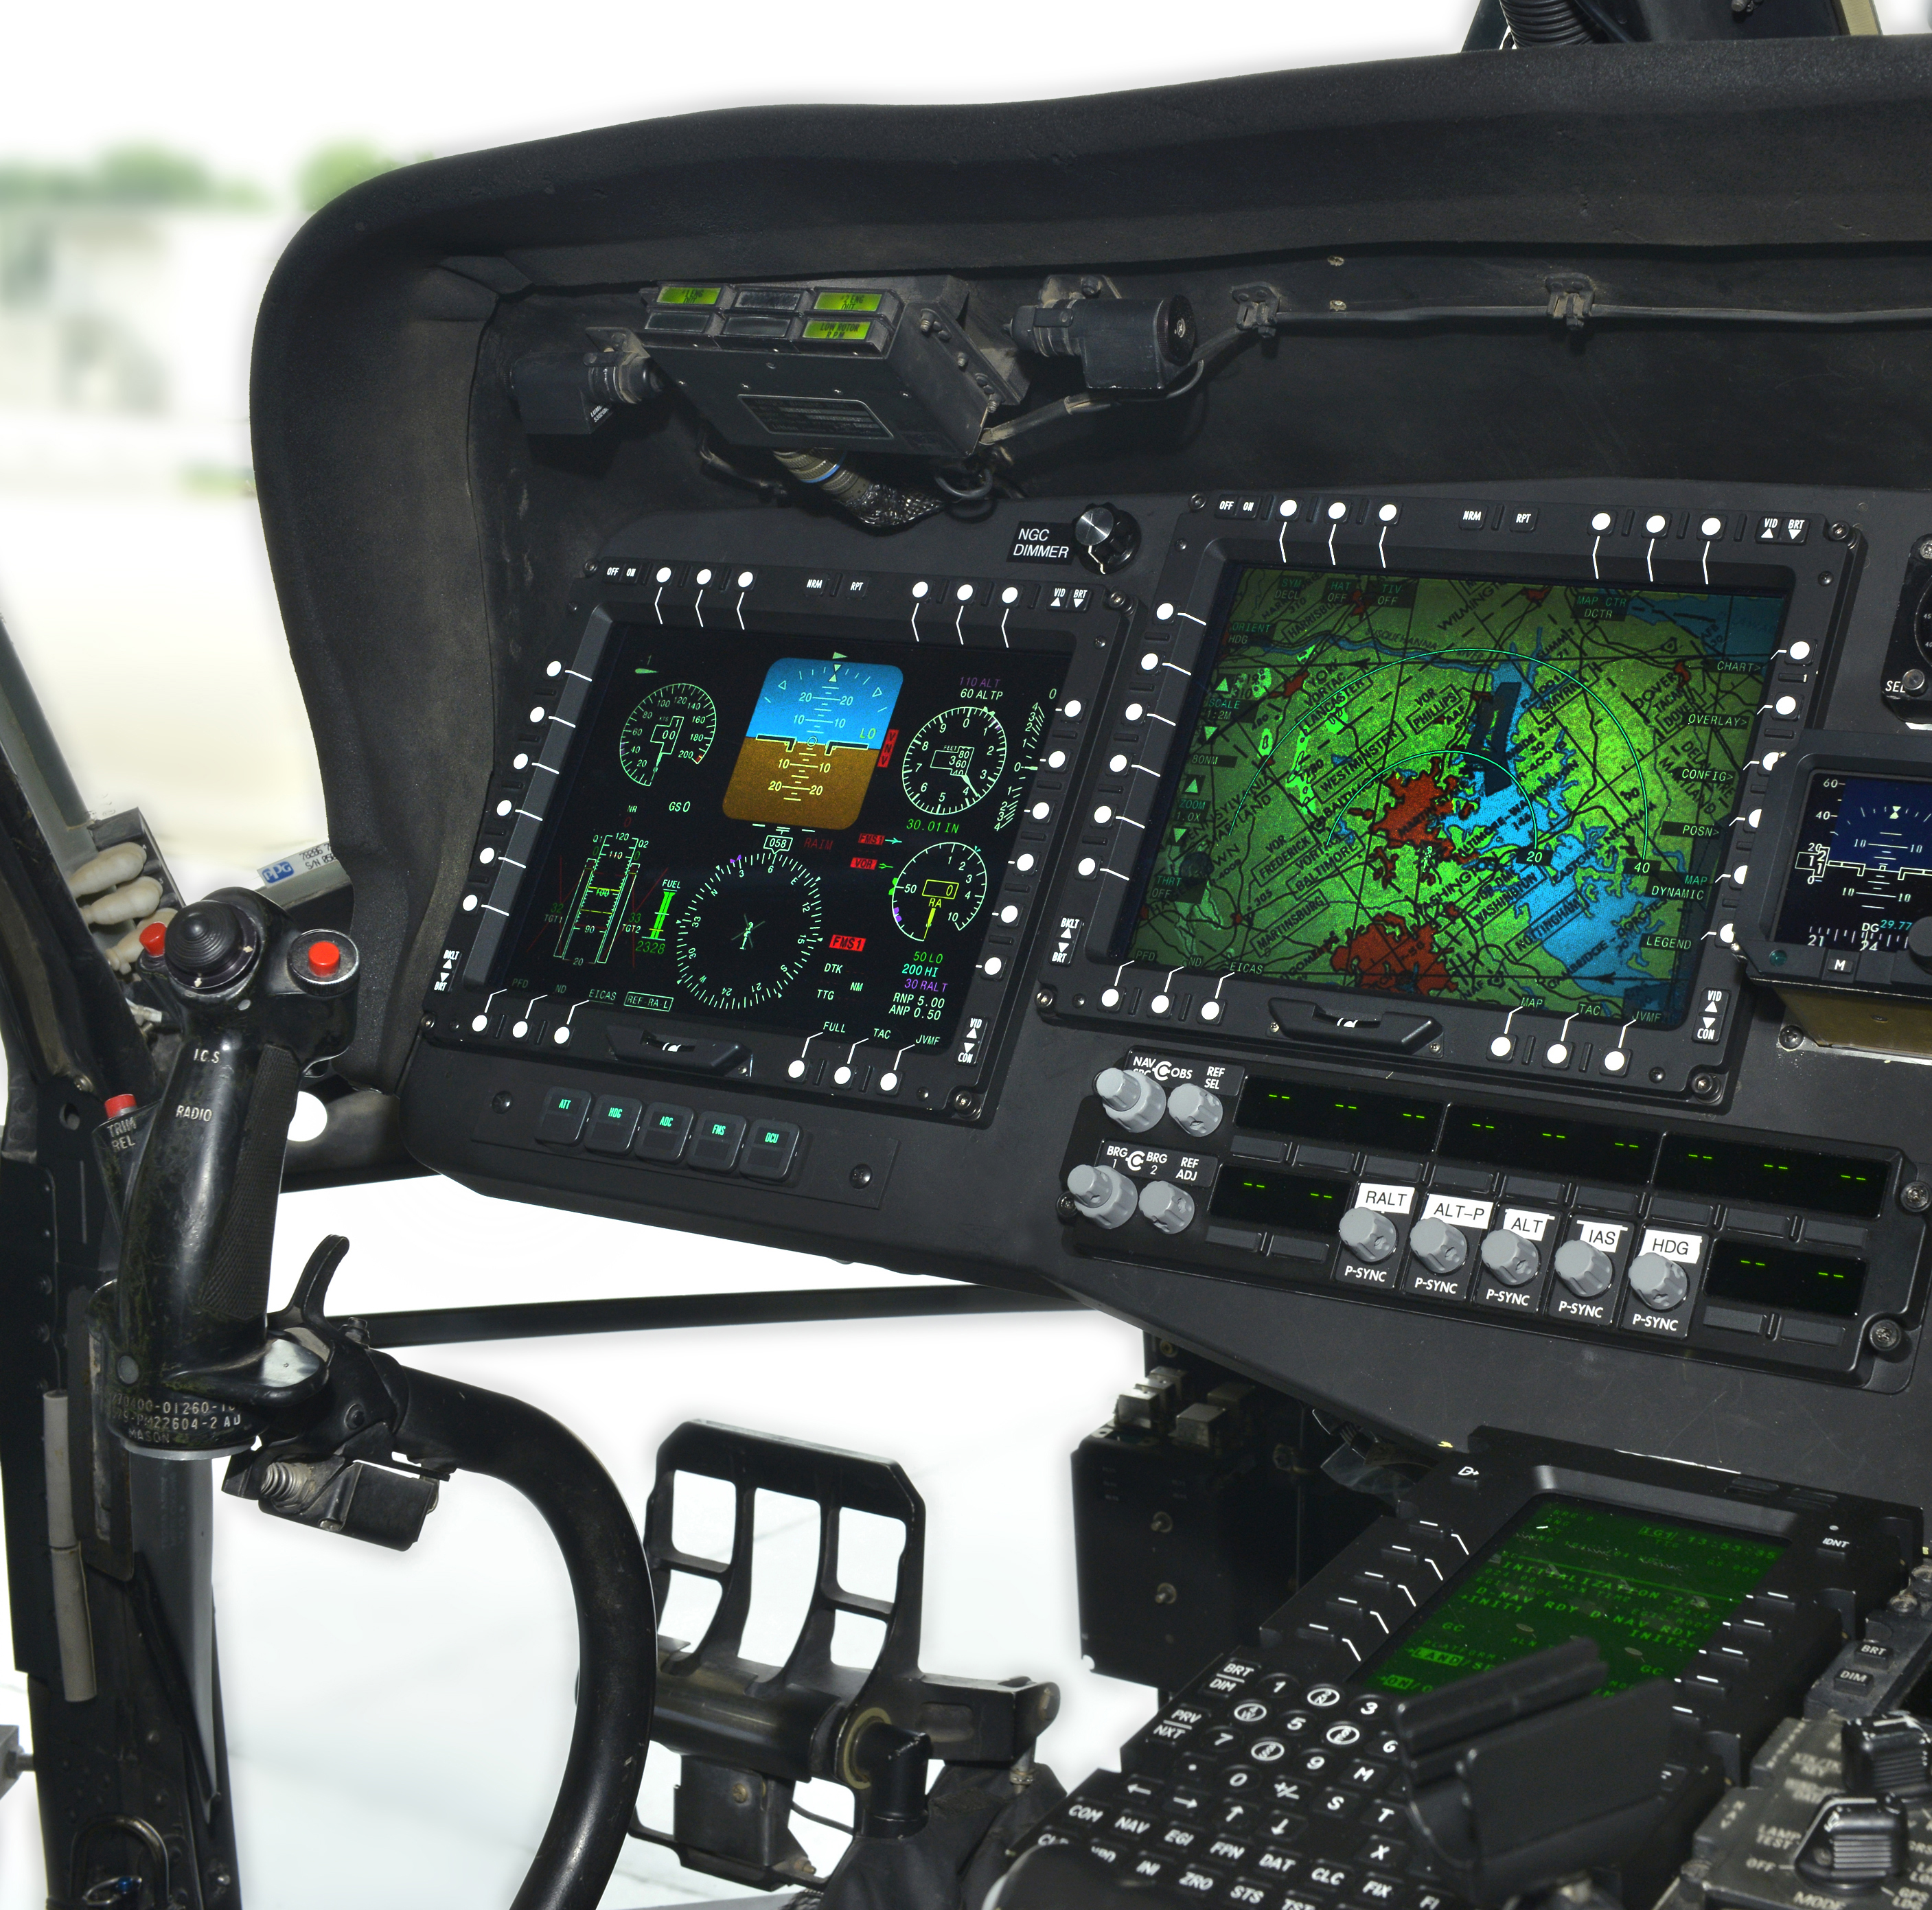 UH-60L Black Hawk cockpit